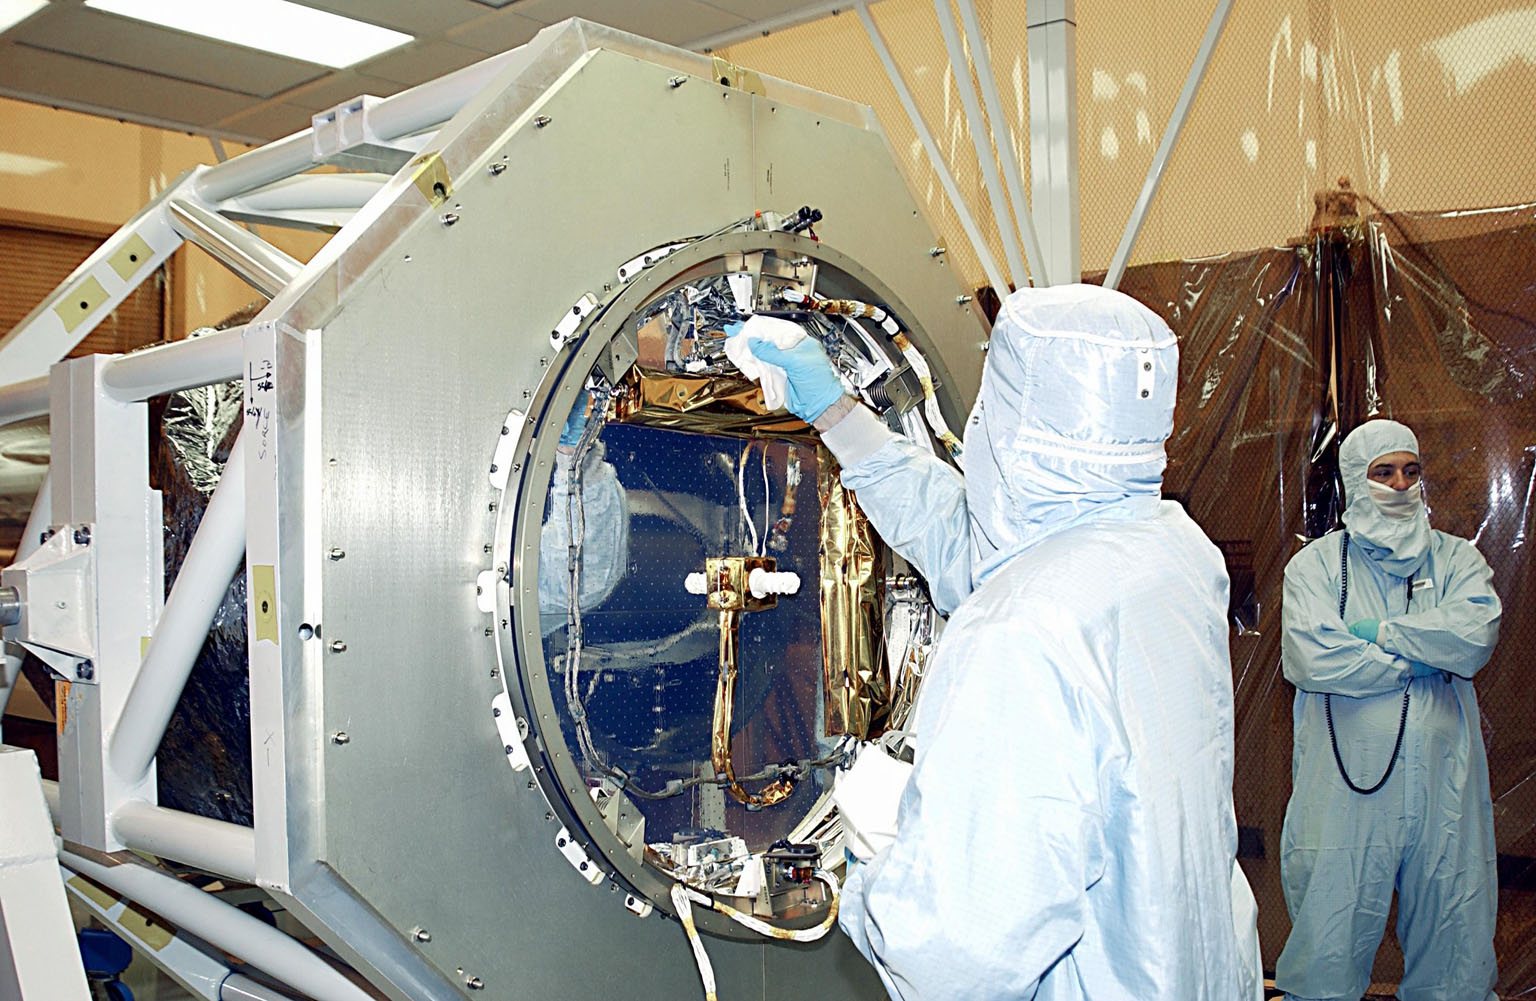 KENNEDY SPACE CENTER, FLA. -- In the Multi-Purpose Processing Facility, a technician cleans NASA's Solar Radiation and Climate Experiment (SORCE) before its mating to the Pegasus XL Expendable Launch Vehicle. Built by Orbital Sciences Space Systems Group, SORCE will study and measure solar irradiance as a source of energy in the Earth's atmosphere. The launch of SORCE is scheduled for Jan. 25 at 3:14 p.m. from Cape Canaveral Air Force Station, Fla.